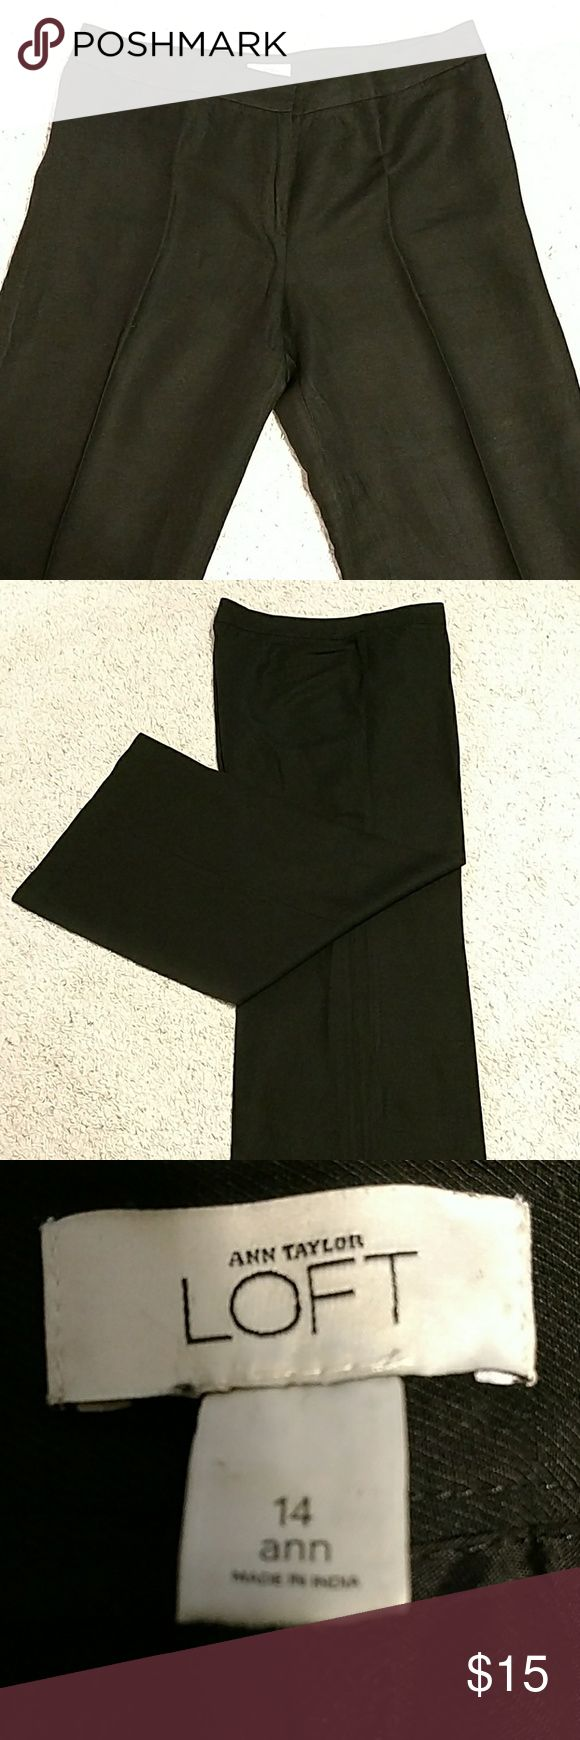 "Ann Taylor Loft Linen Pants These wide leg, black linen pants in Ann Taylor's ""Ann"" fit are perfect for summer.  The waist measures 18"" across.  Leg opening is 13"".  Inseam measures 30"".  Plain front, no belt loops or pockets.  Pants are unlined.  Great condition. Ann Taylor Loft Pants Wide Leg"